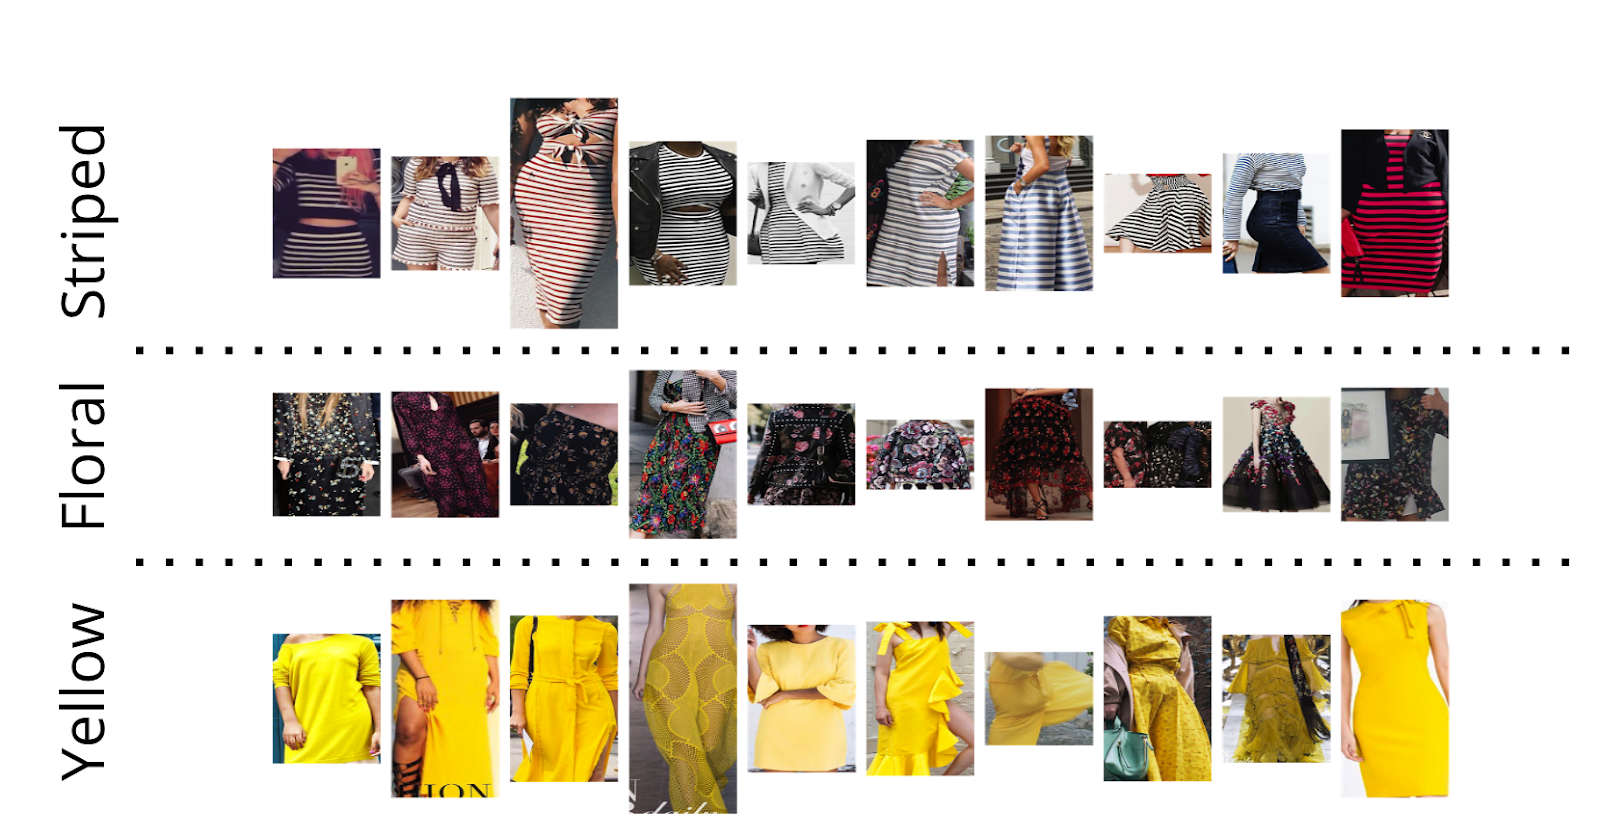 Clustering example - fashion pictures